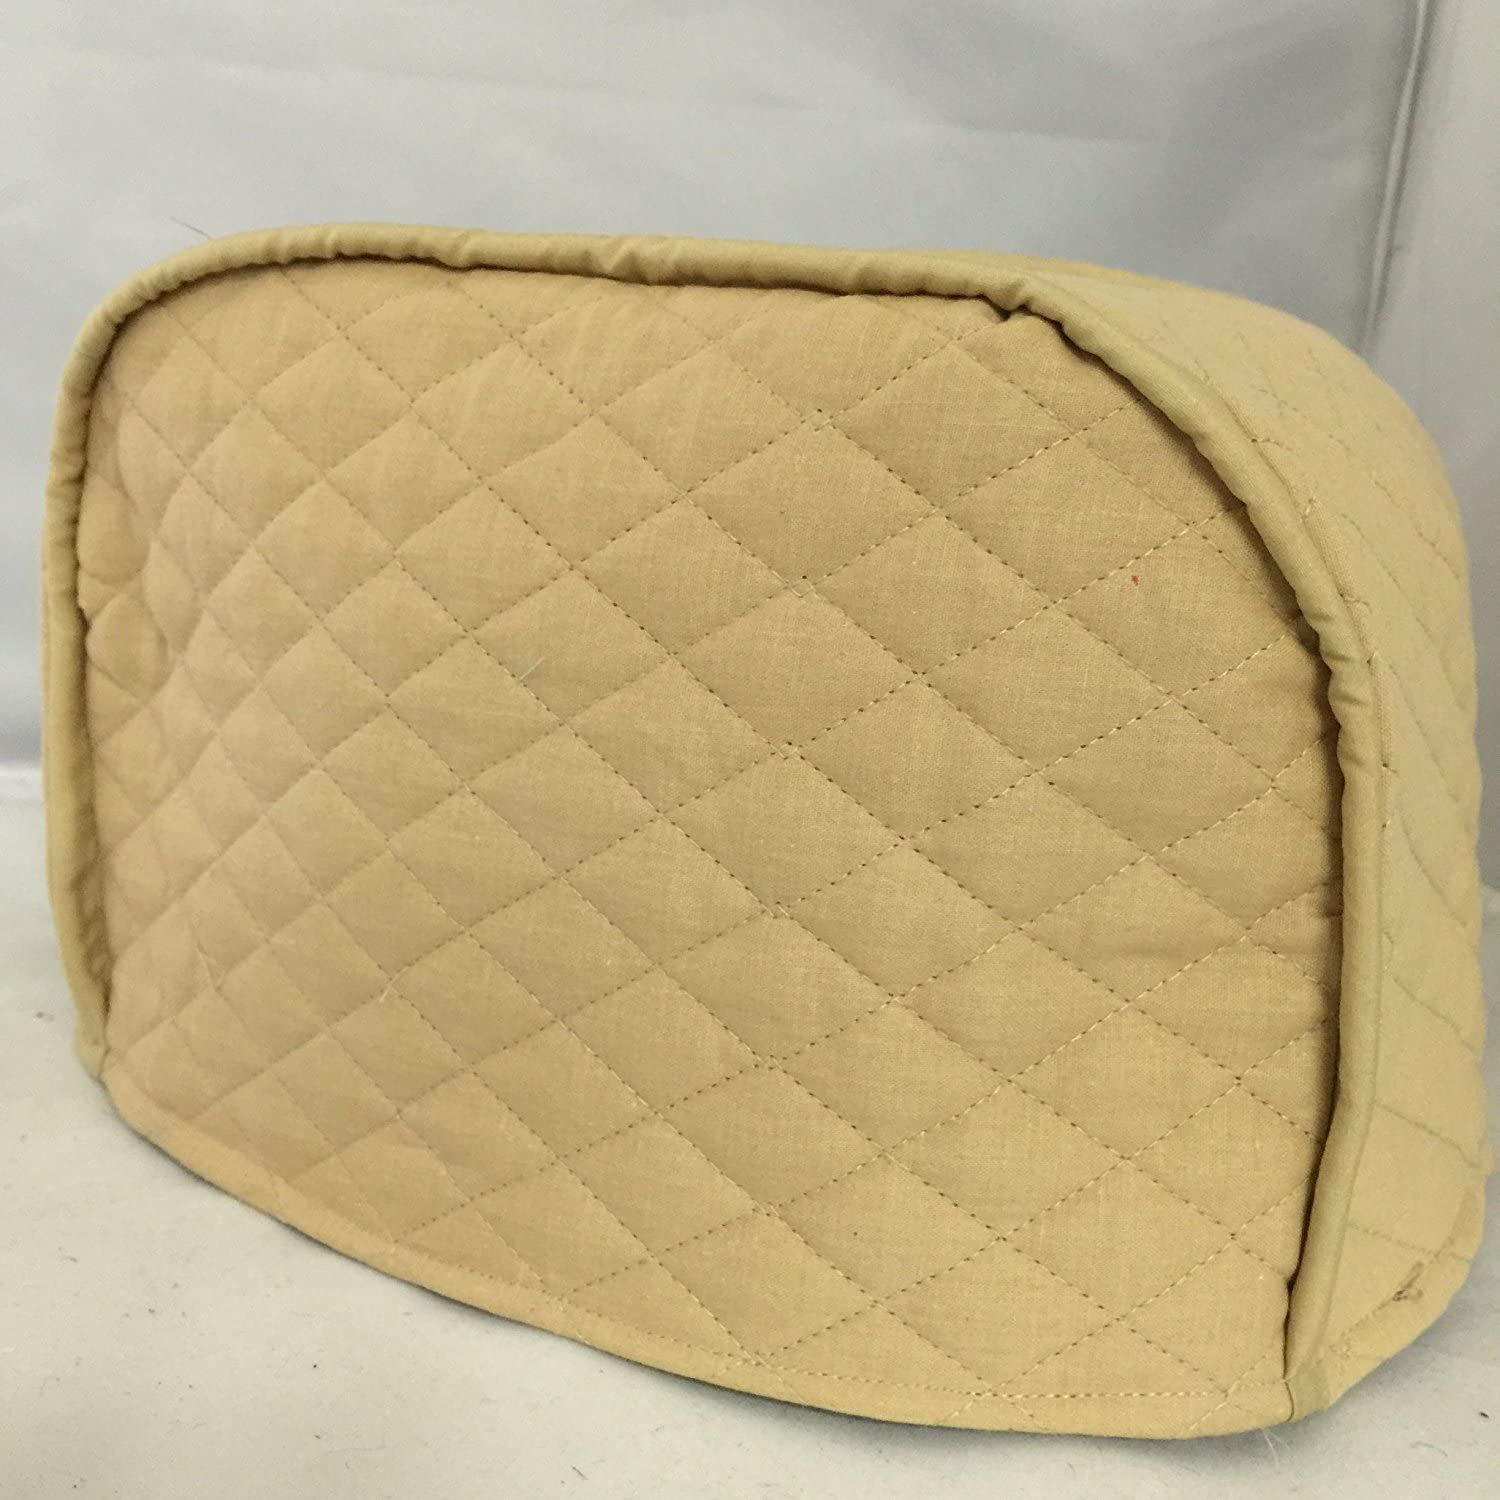 """4 Slice Toaster Cover - Long Slot (15.75""""x8""""x8"""") / Quilted Double Faced Cotton, Beige"""